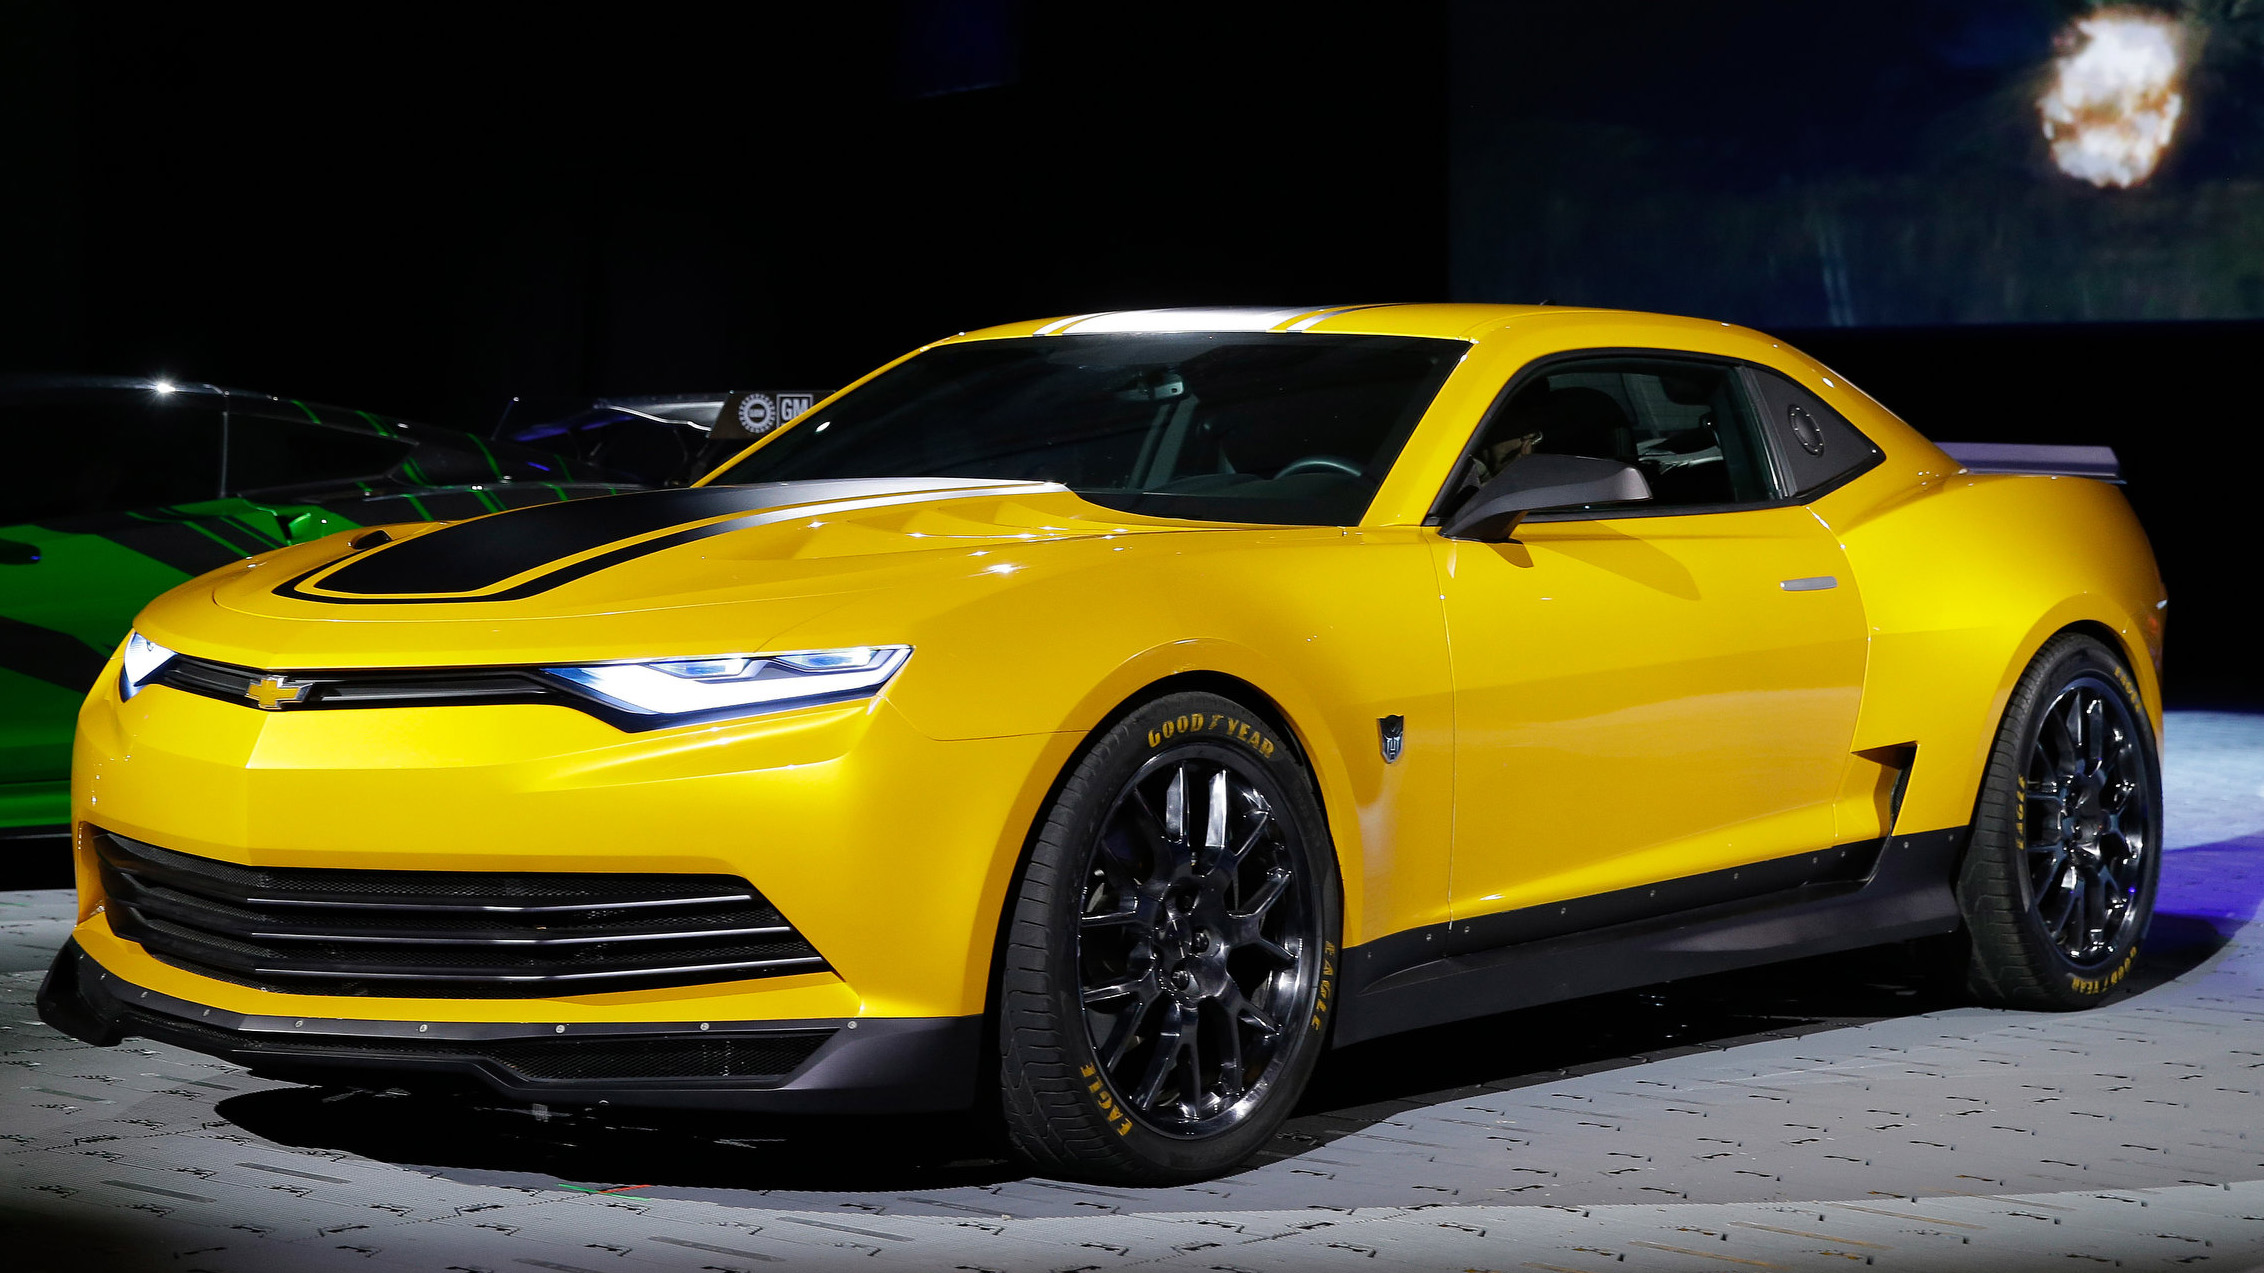 Bumblebee Camaro Gets A Facelift For Transformers 4